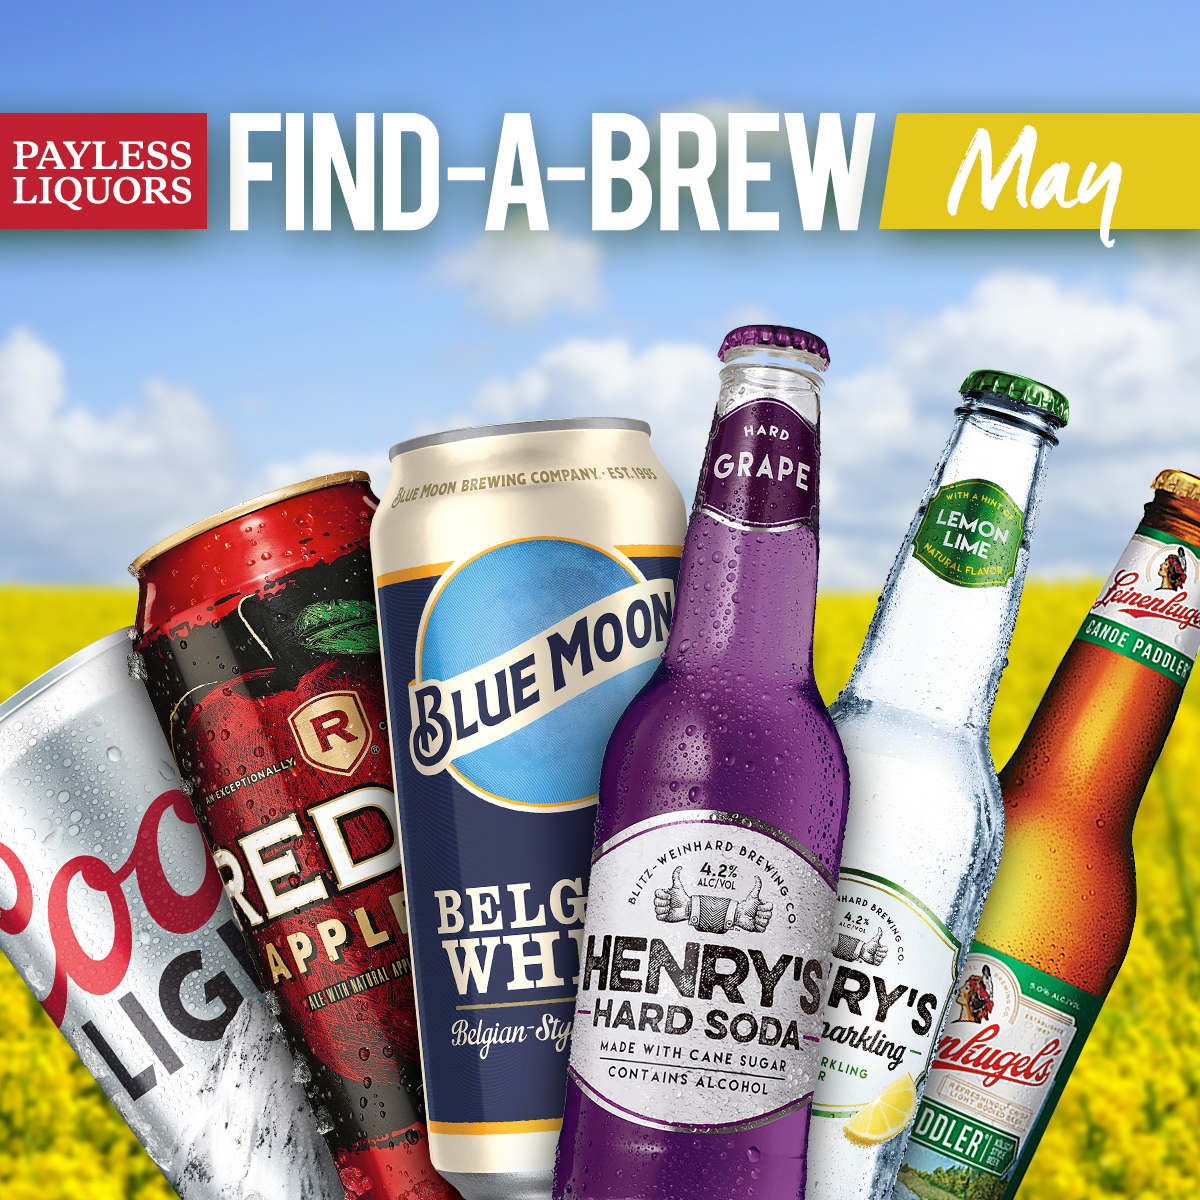 May Find-a-brew